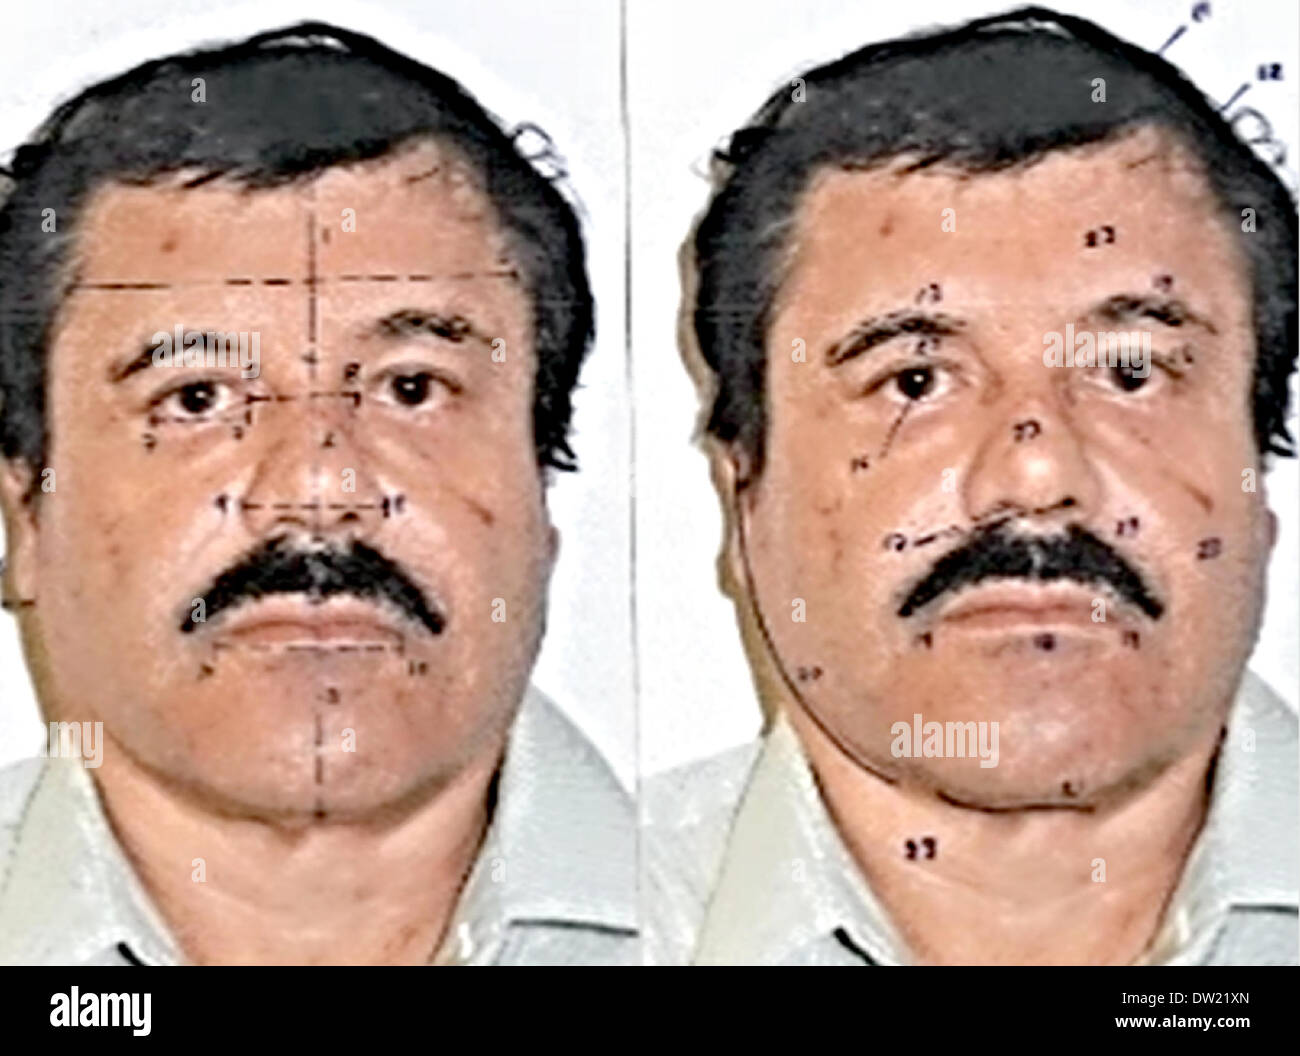 Mexico City. 25th Feb, 2014. Image provided by Mexico's Attorney General Office (PGR), on Feb. 25, 2014, show Joaquin 'El Chapo' Guzman, during the scientific tests to prove his identity, in Mexico City, capital of Mexico. The Sinaloa Cartel leader was subjected to a buccal swab, a phisiognomic identity study and a test of 10 fingerprints. Federal courts in Mexico Tuesday formally charged Joaquin 'El Chapo' Guzman, the captured leader of the Sinaloa drug cartel, with organized crime and drug trafficking. Credit:  Mexico's Attorney General Office/Xinhua/Alamy Live News - Stock Image